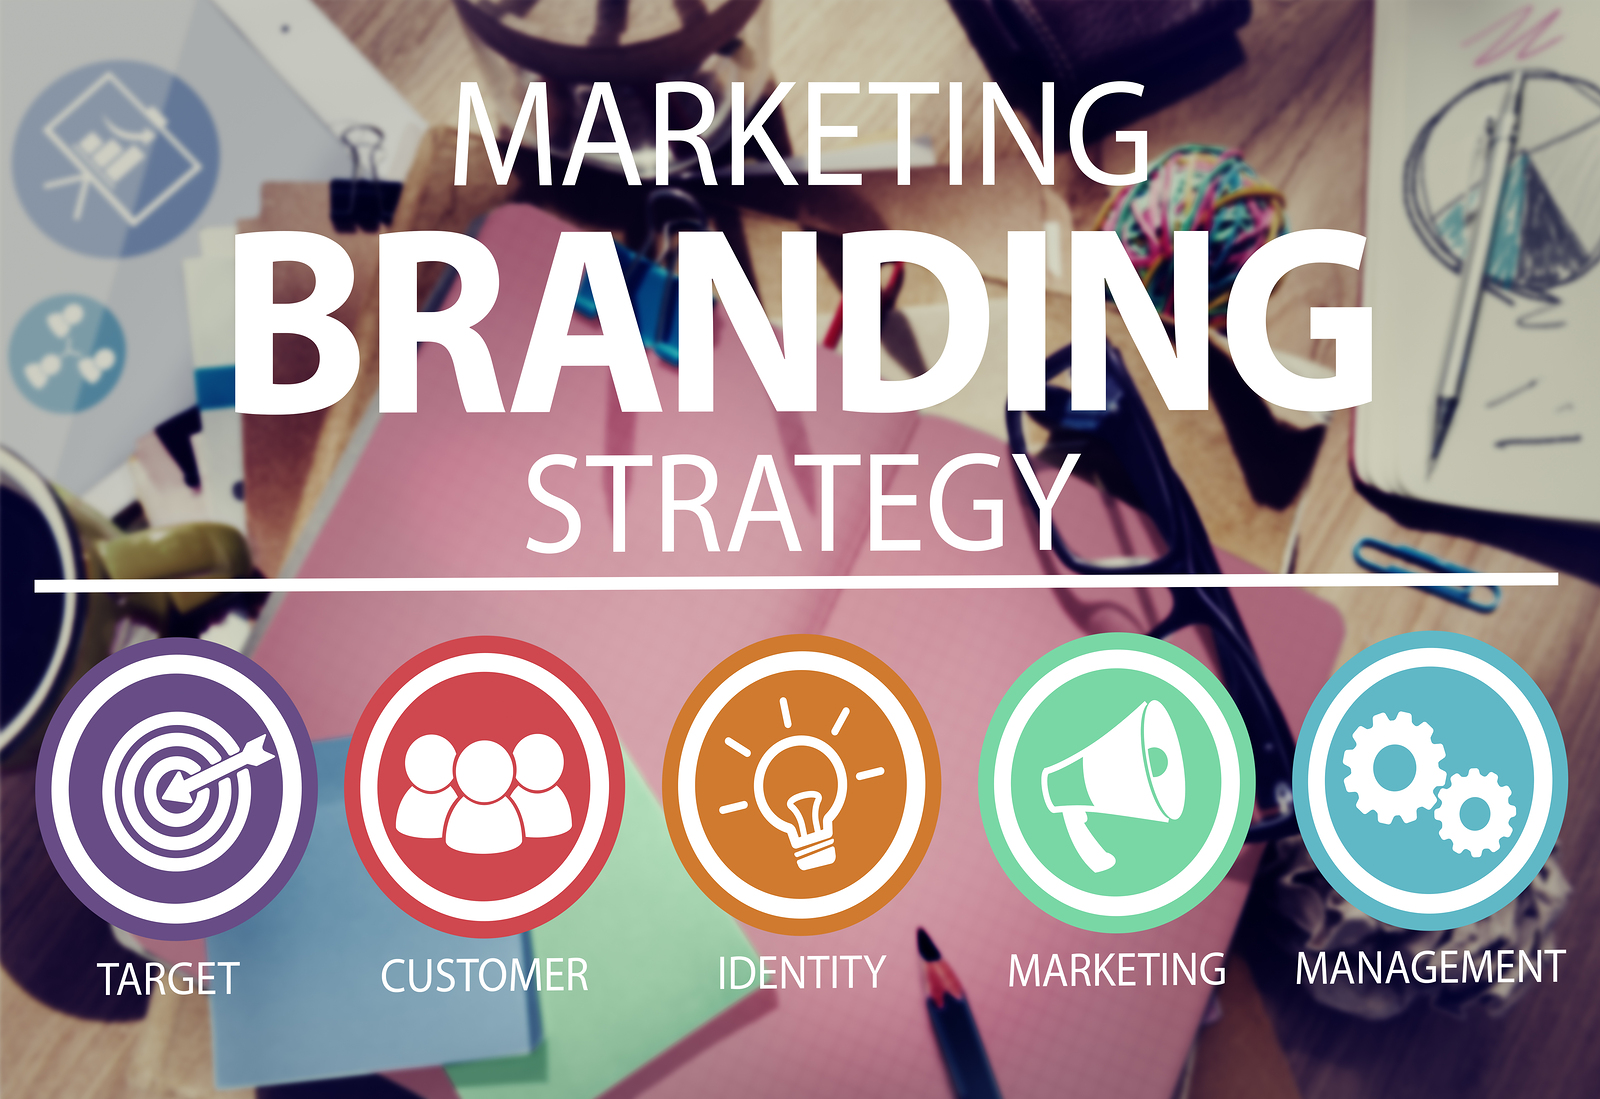 7 Creative Marketing Ideas that can Work Wonders for your Business